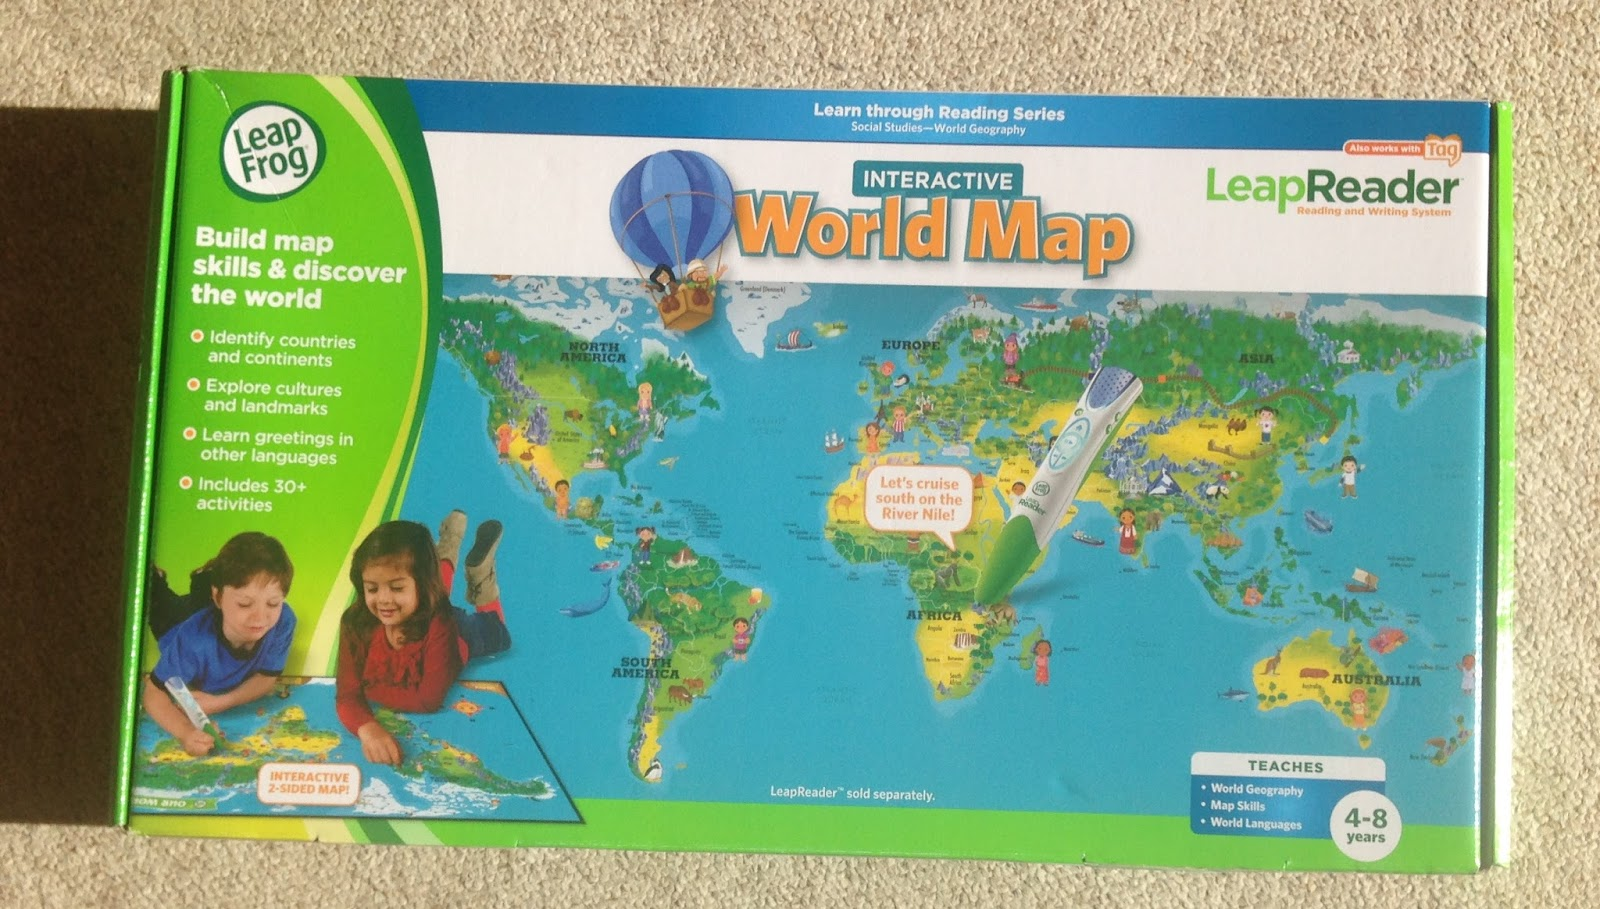 Mellow mummy leapfrog discover summer club and leapreader as part of the leapfrog blogger panel lara was sent a copy of the leapfrog leapreader interactive world map which is an absolutely brilliant learning gumiabroncs Choice Image